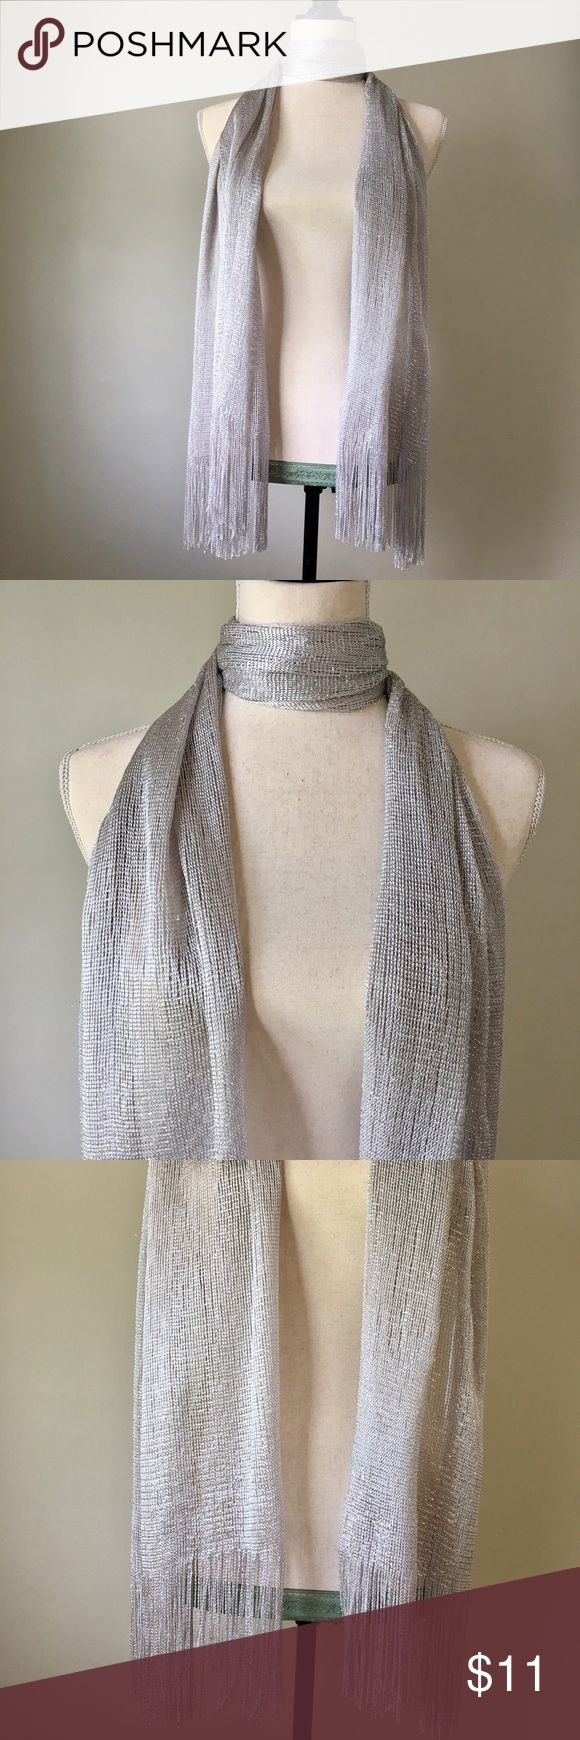 "Long Silver Scarf Never worn long silver and metallic threaded scarf that shimmers when the light catches.  Approximately 80"" long by 20"" wide. Super cute with a pair of skinny jeans and a simple white tank. Very retro looking🌼 Accessories Scarves & Wraps"